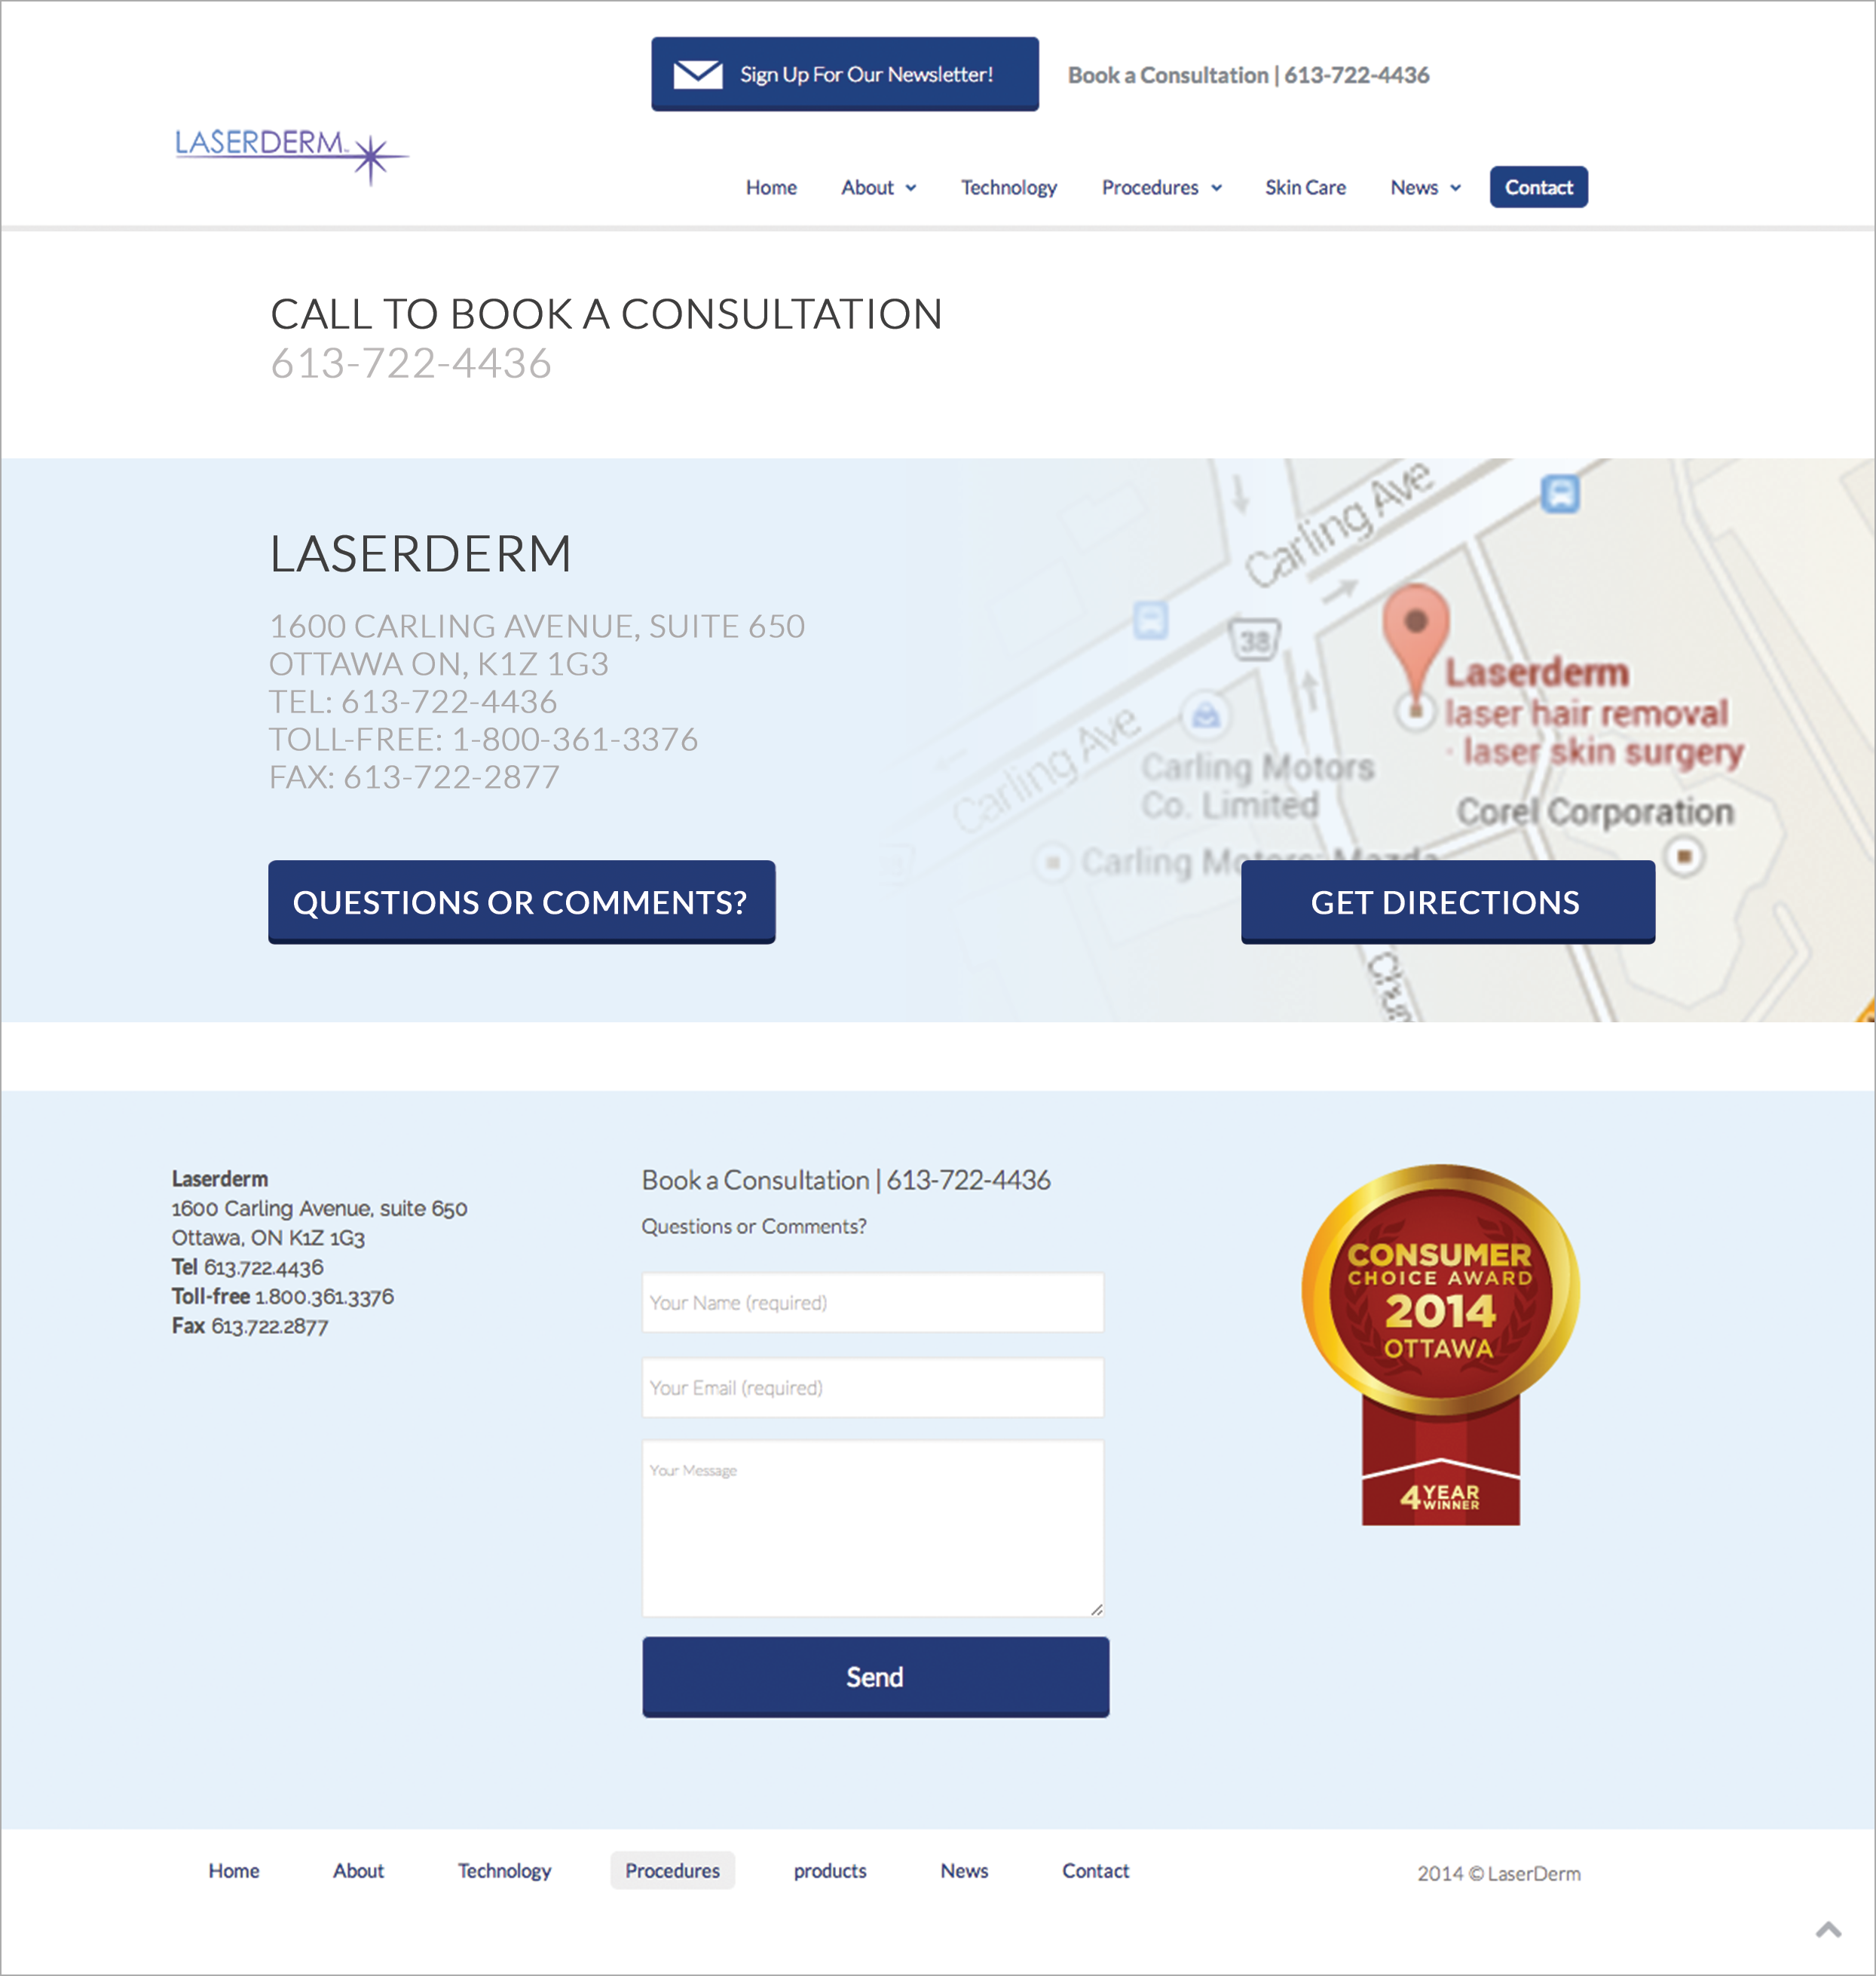 LaserDerm Contact Page